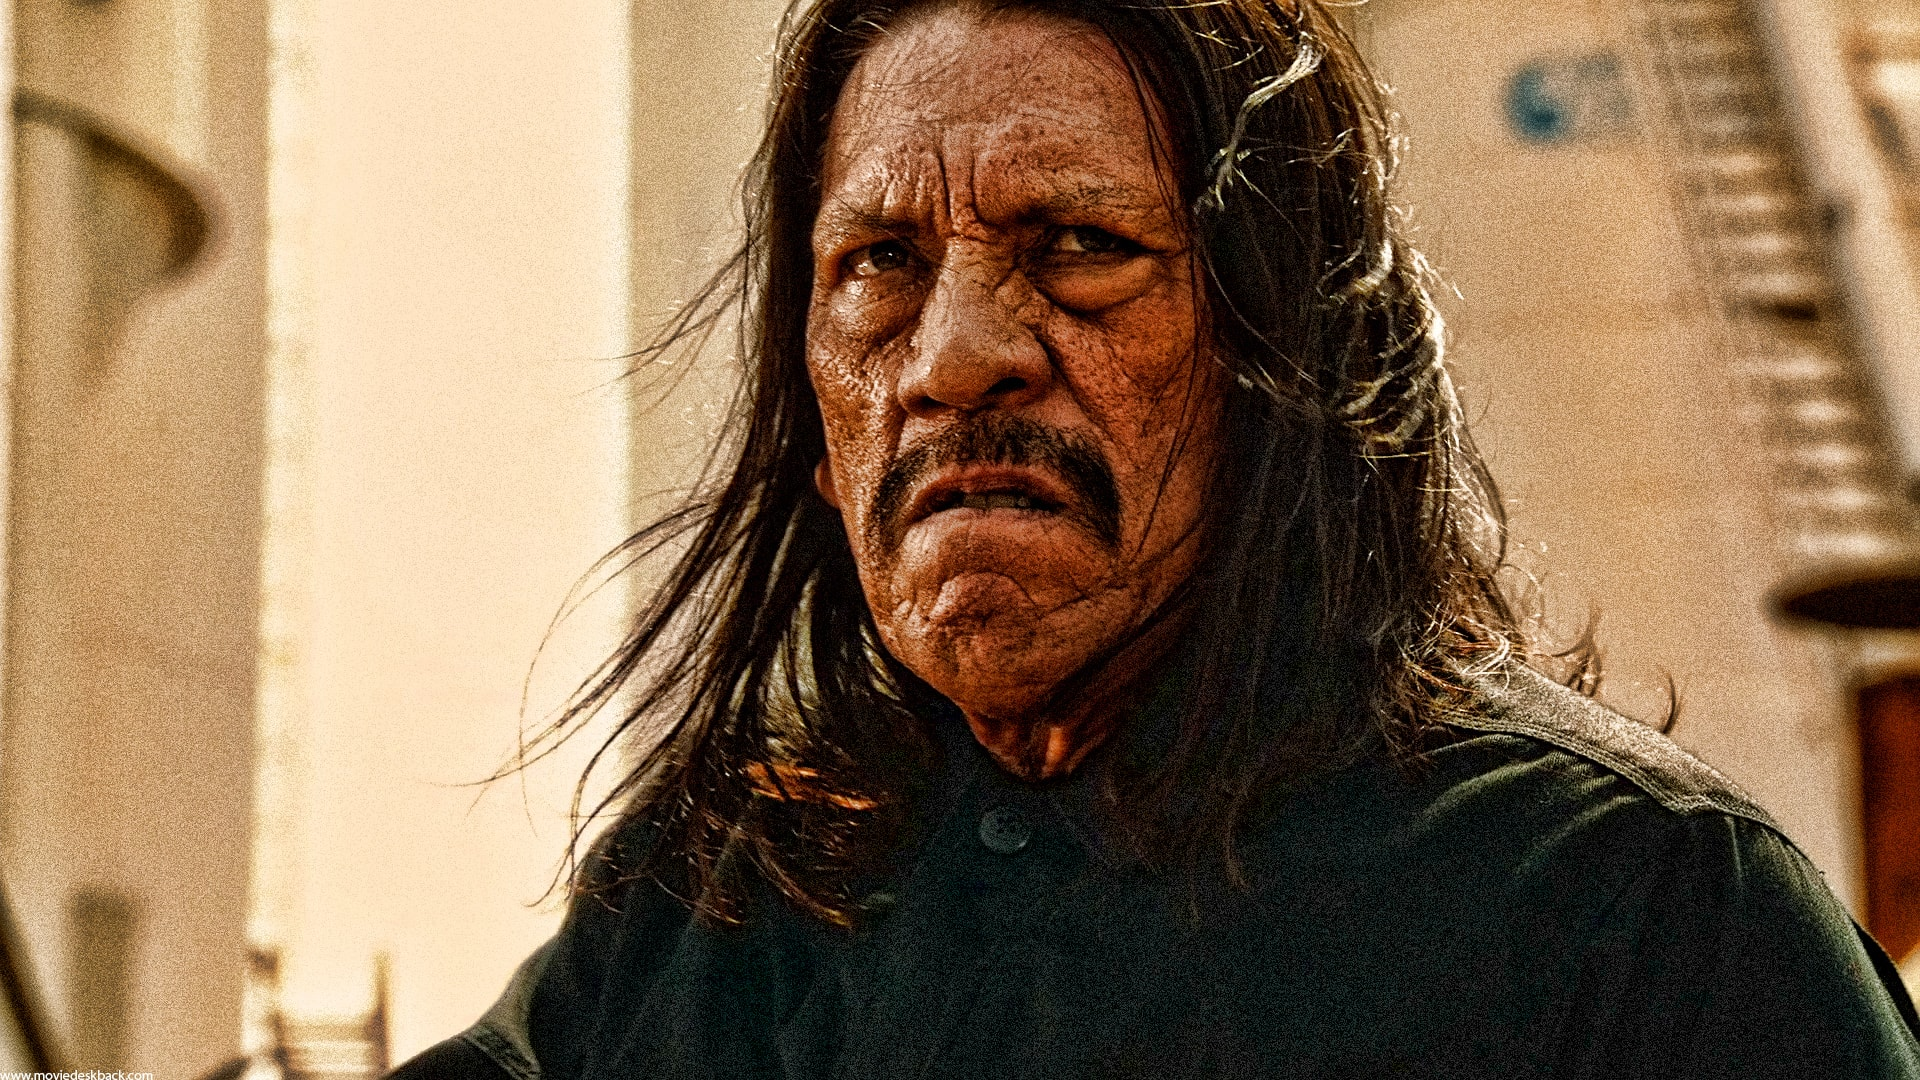 Danny Trejo Wallpapers